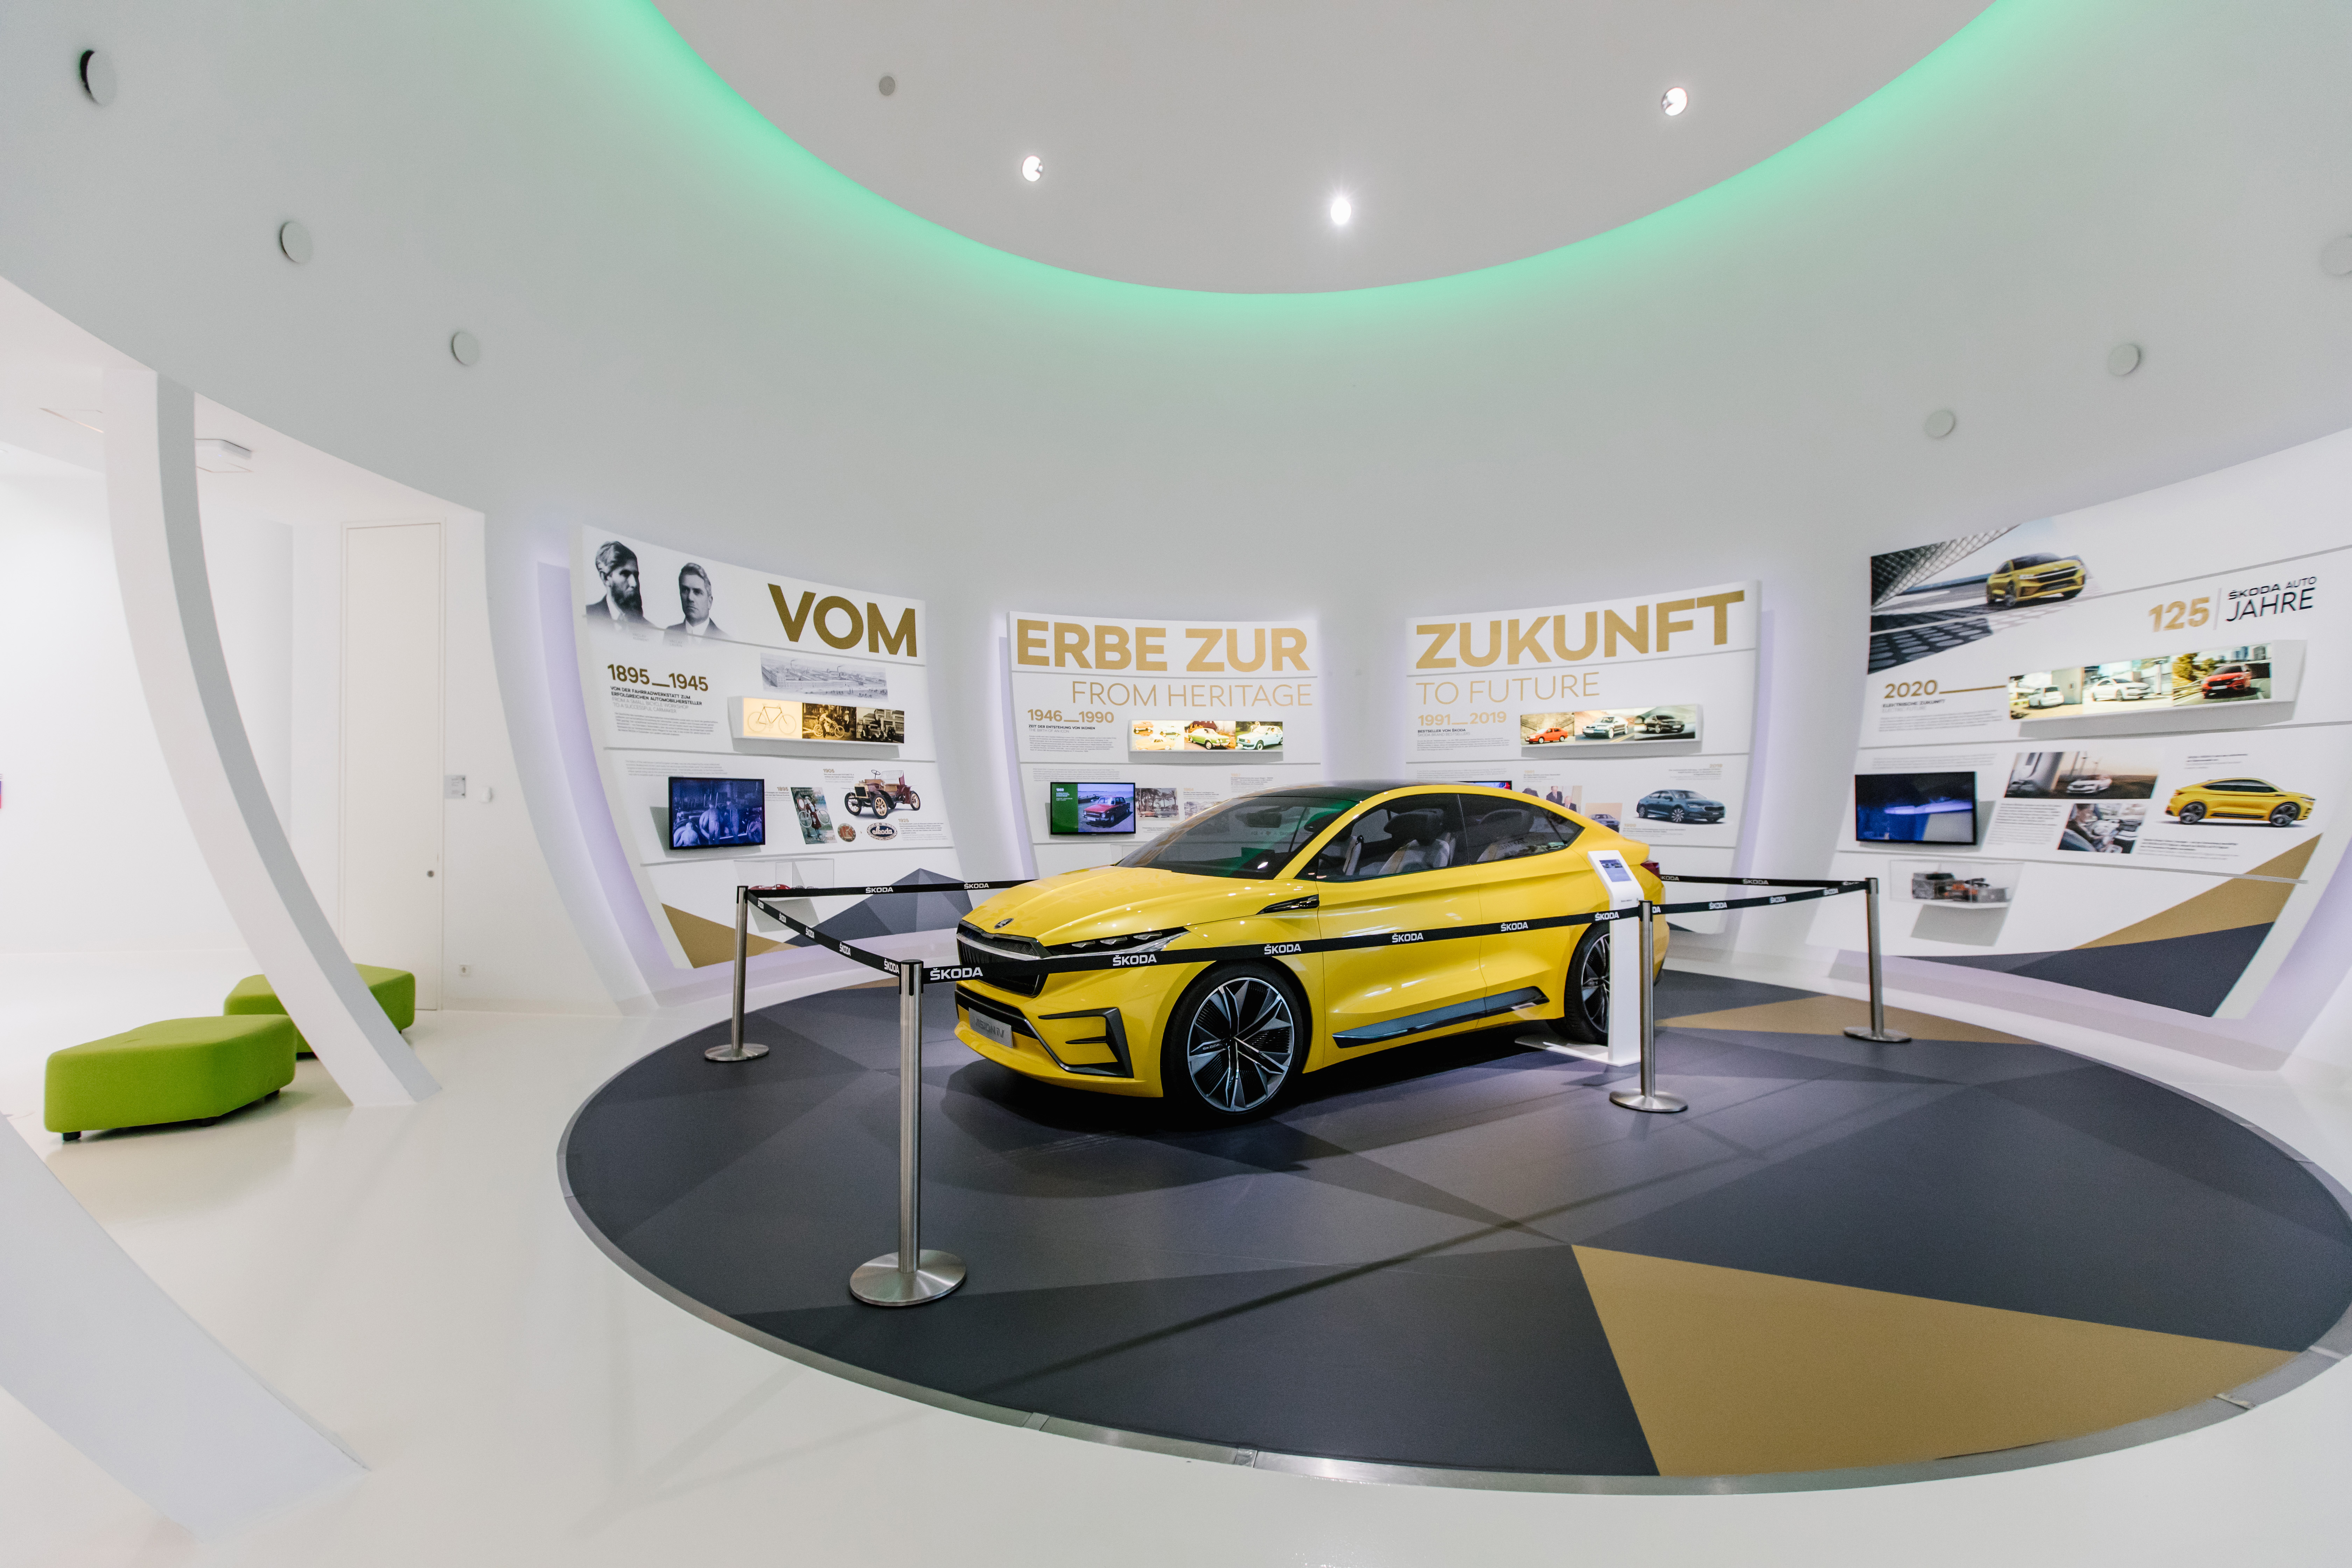 125 years of SKODA: Special exhibition at Autostadt - Image 3